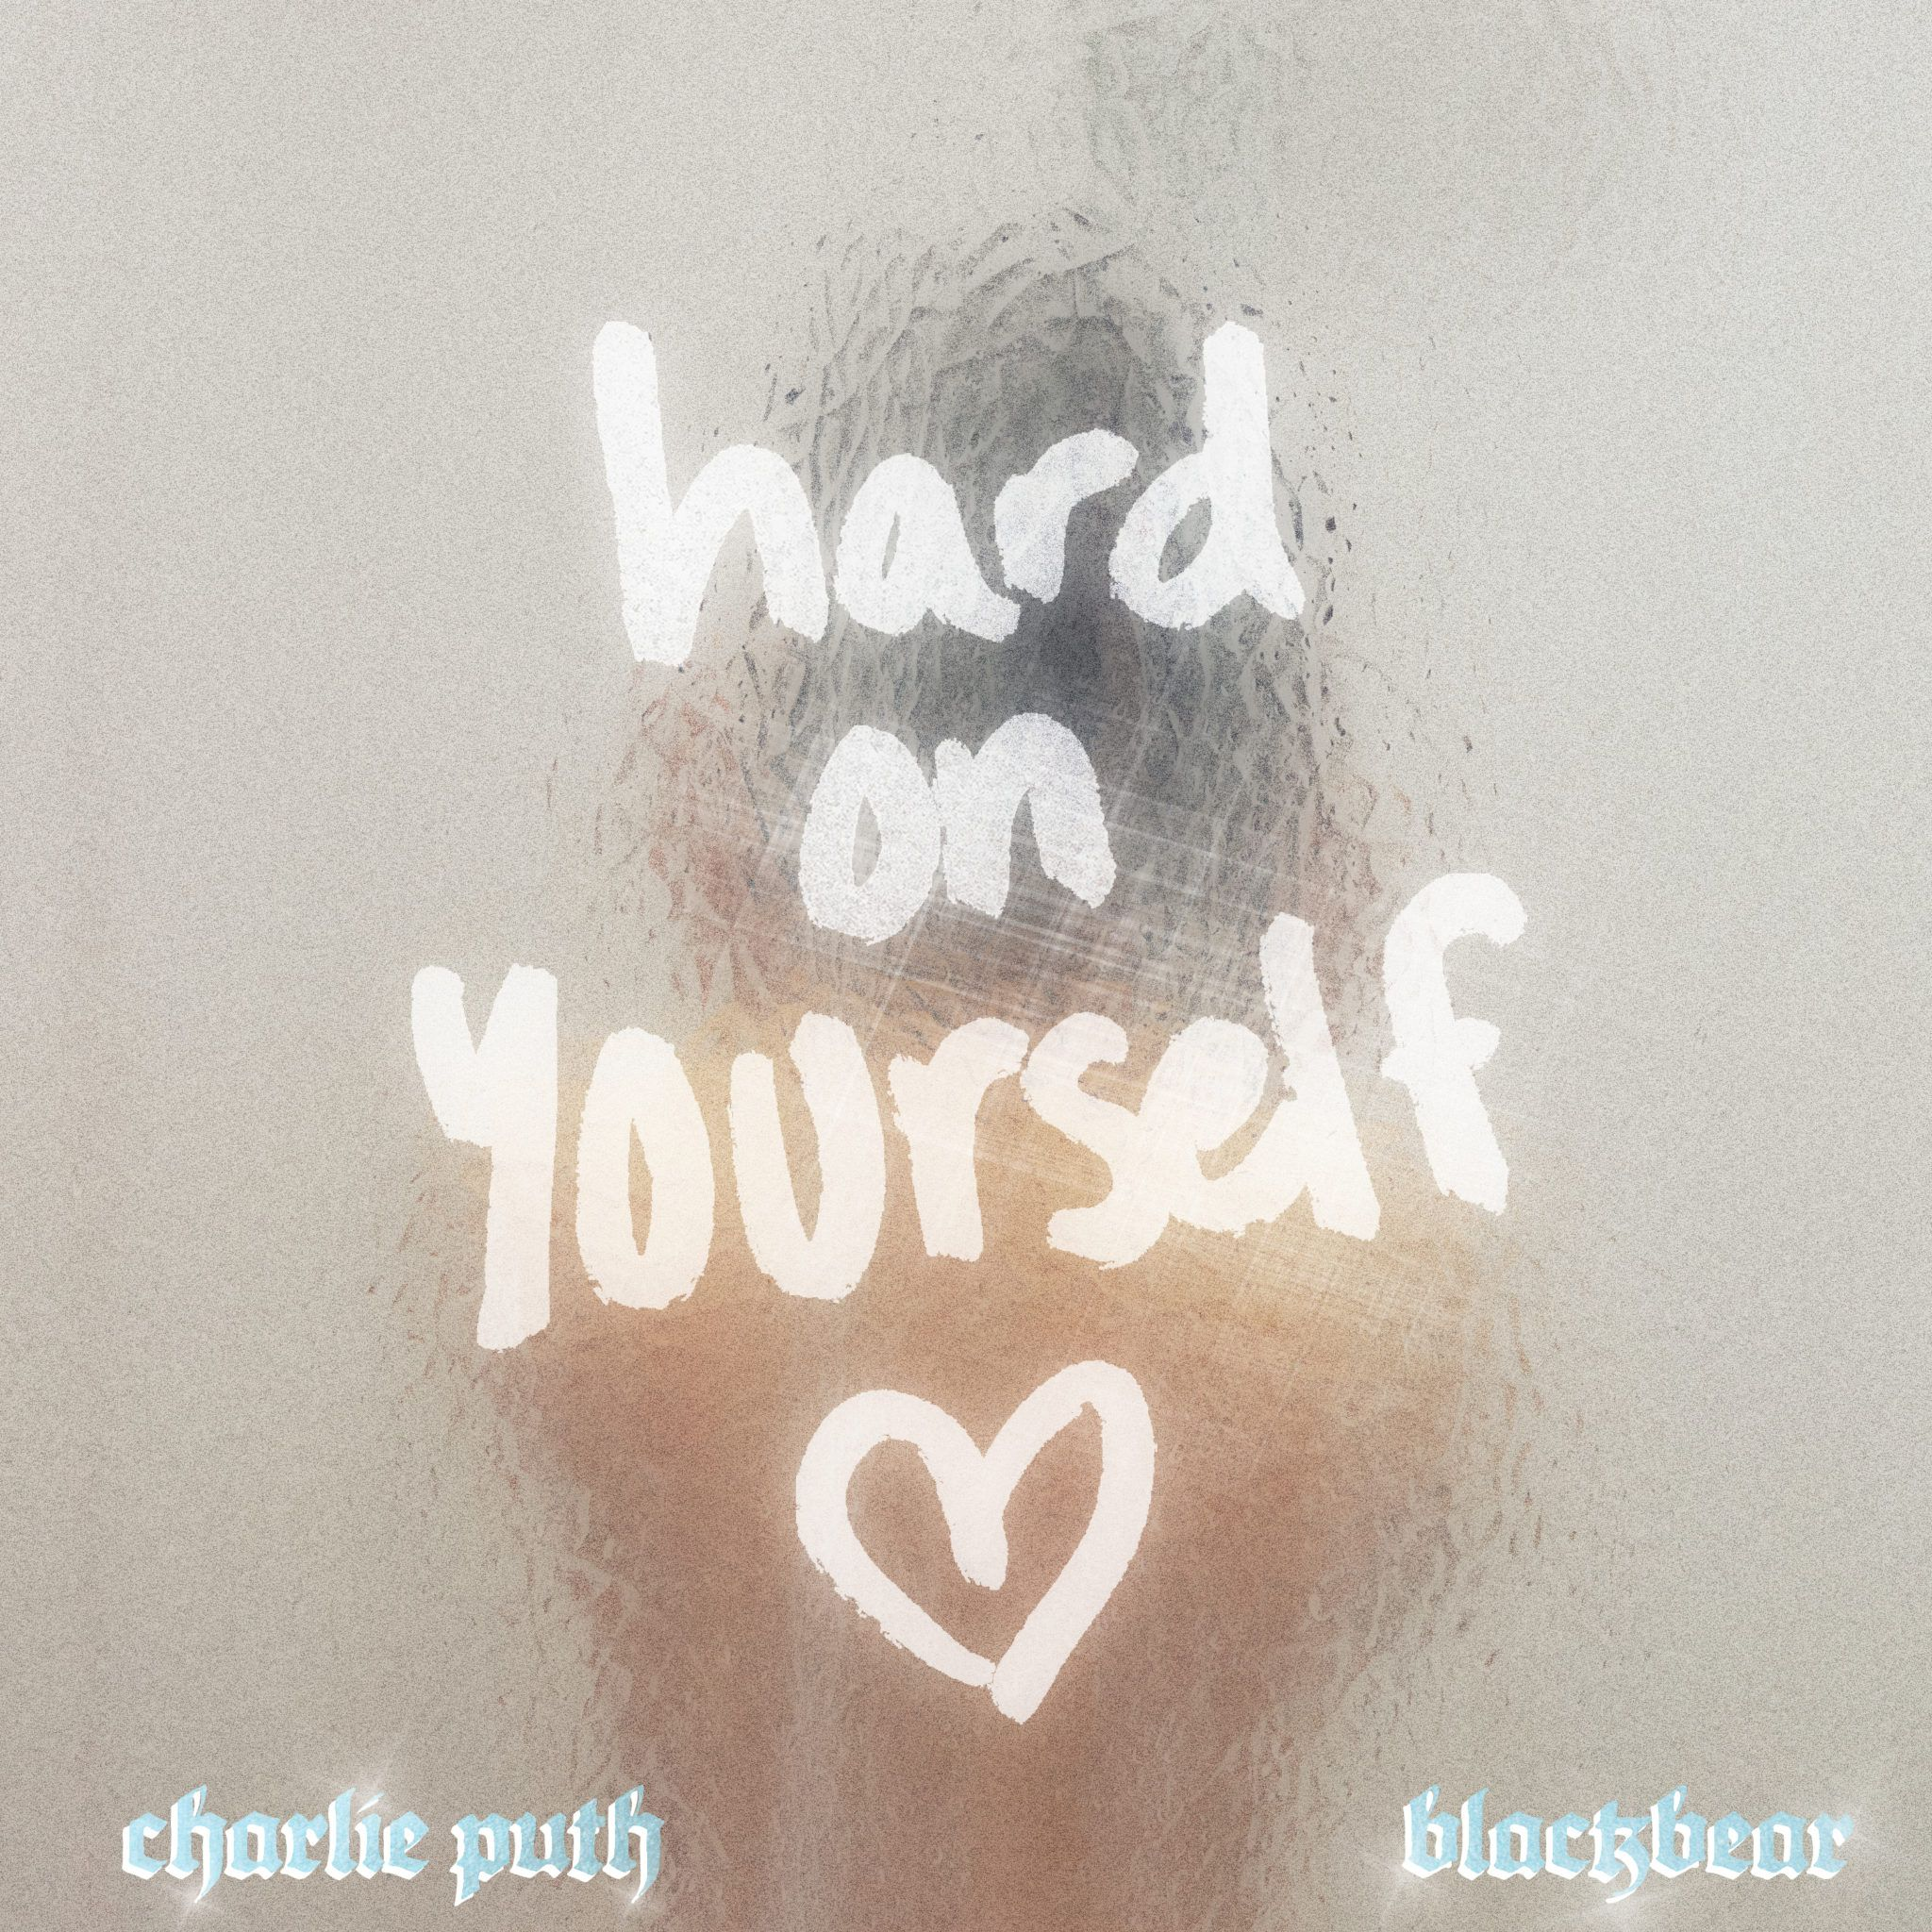 Charlie puth e blackbear unem forças em nova música hard on yourself scaled